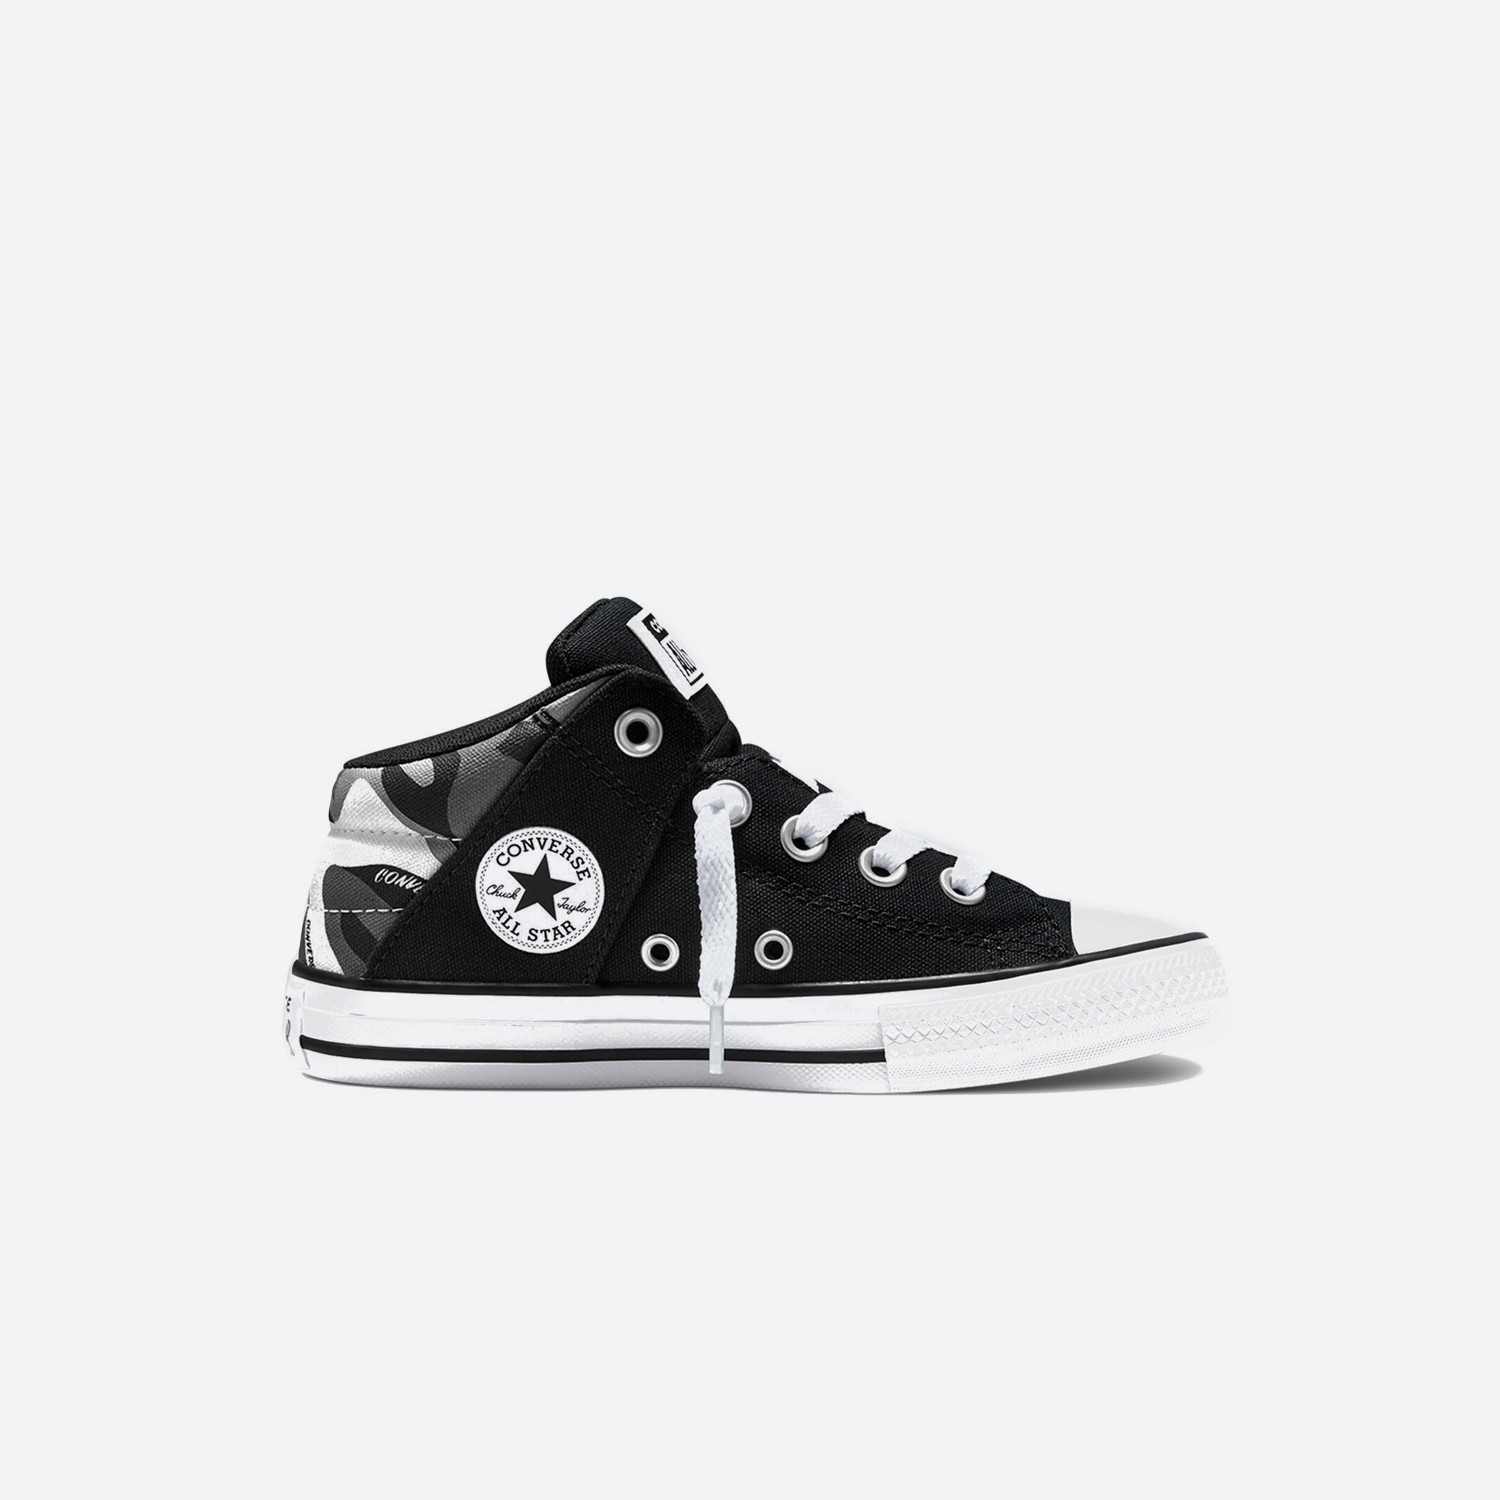 Converse Chuck Taylor All Star Axel Παιδικά Παπούτσια (9000085977_54809)